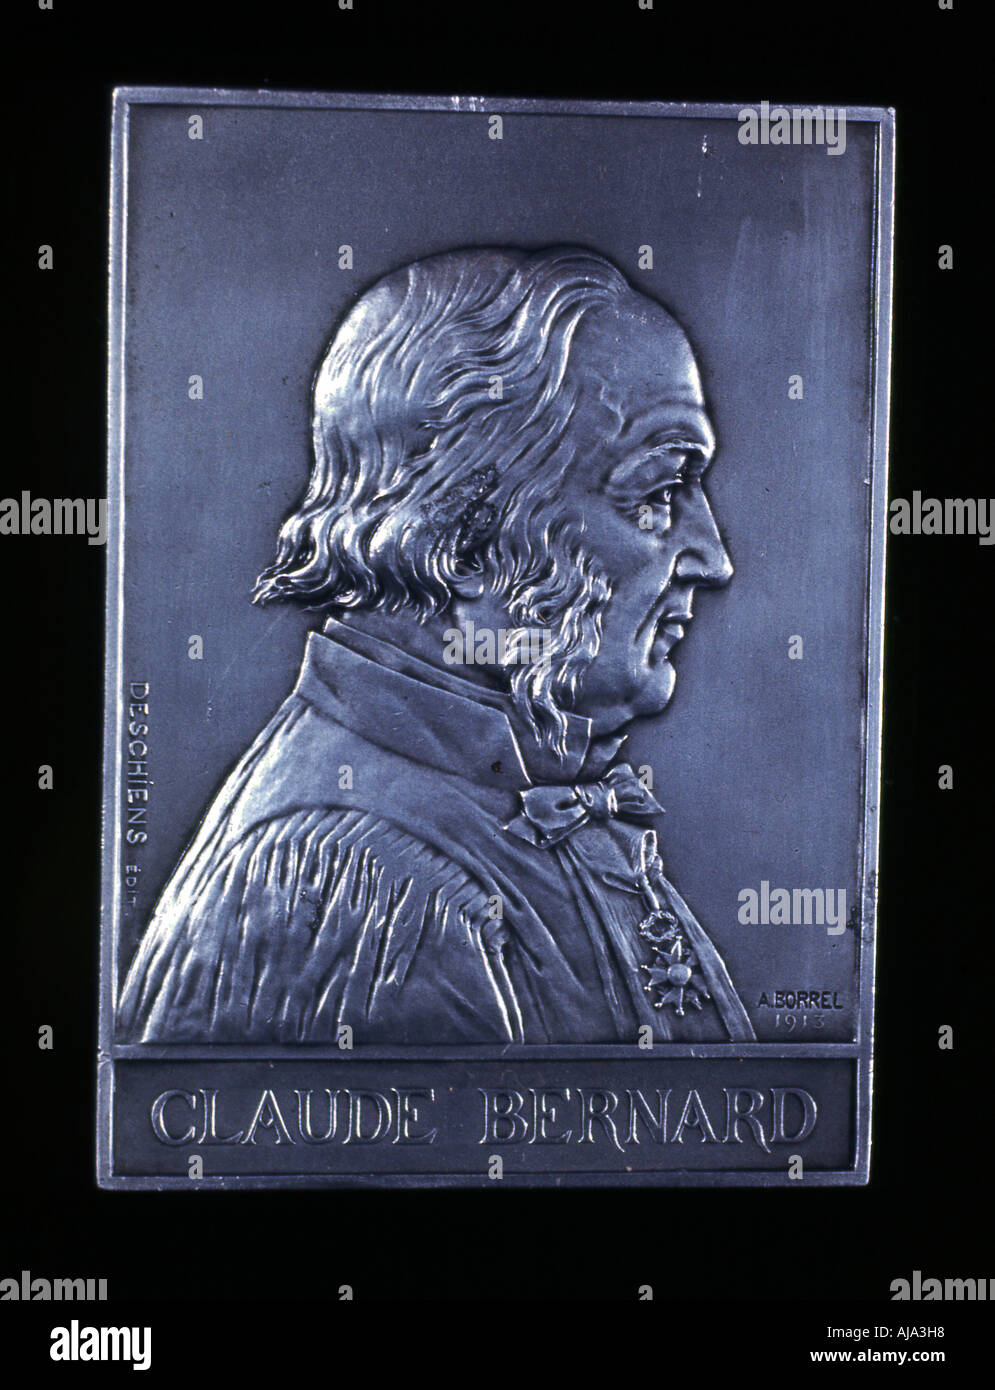 Claude Bernard 19th century French physiologist 1913  - Stock Image